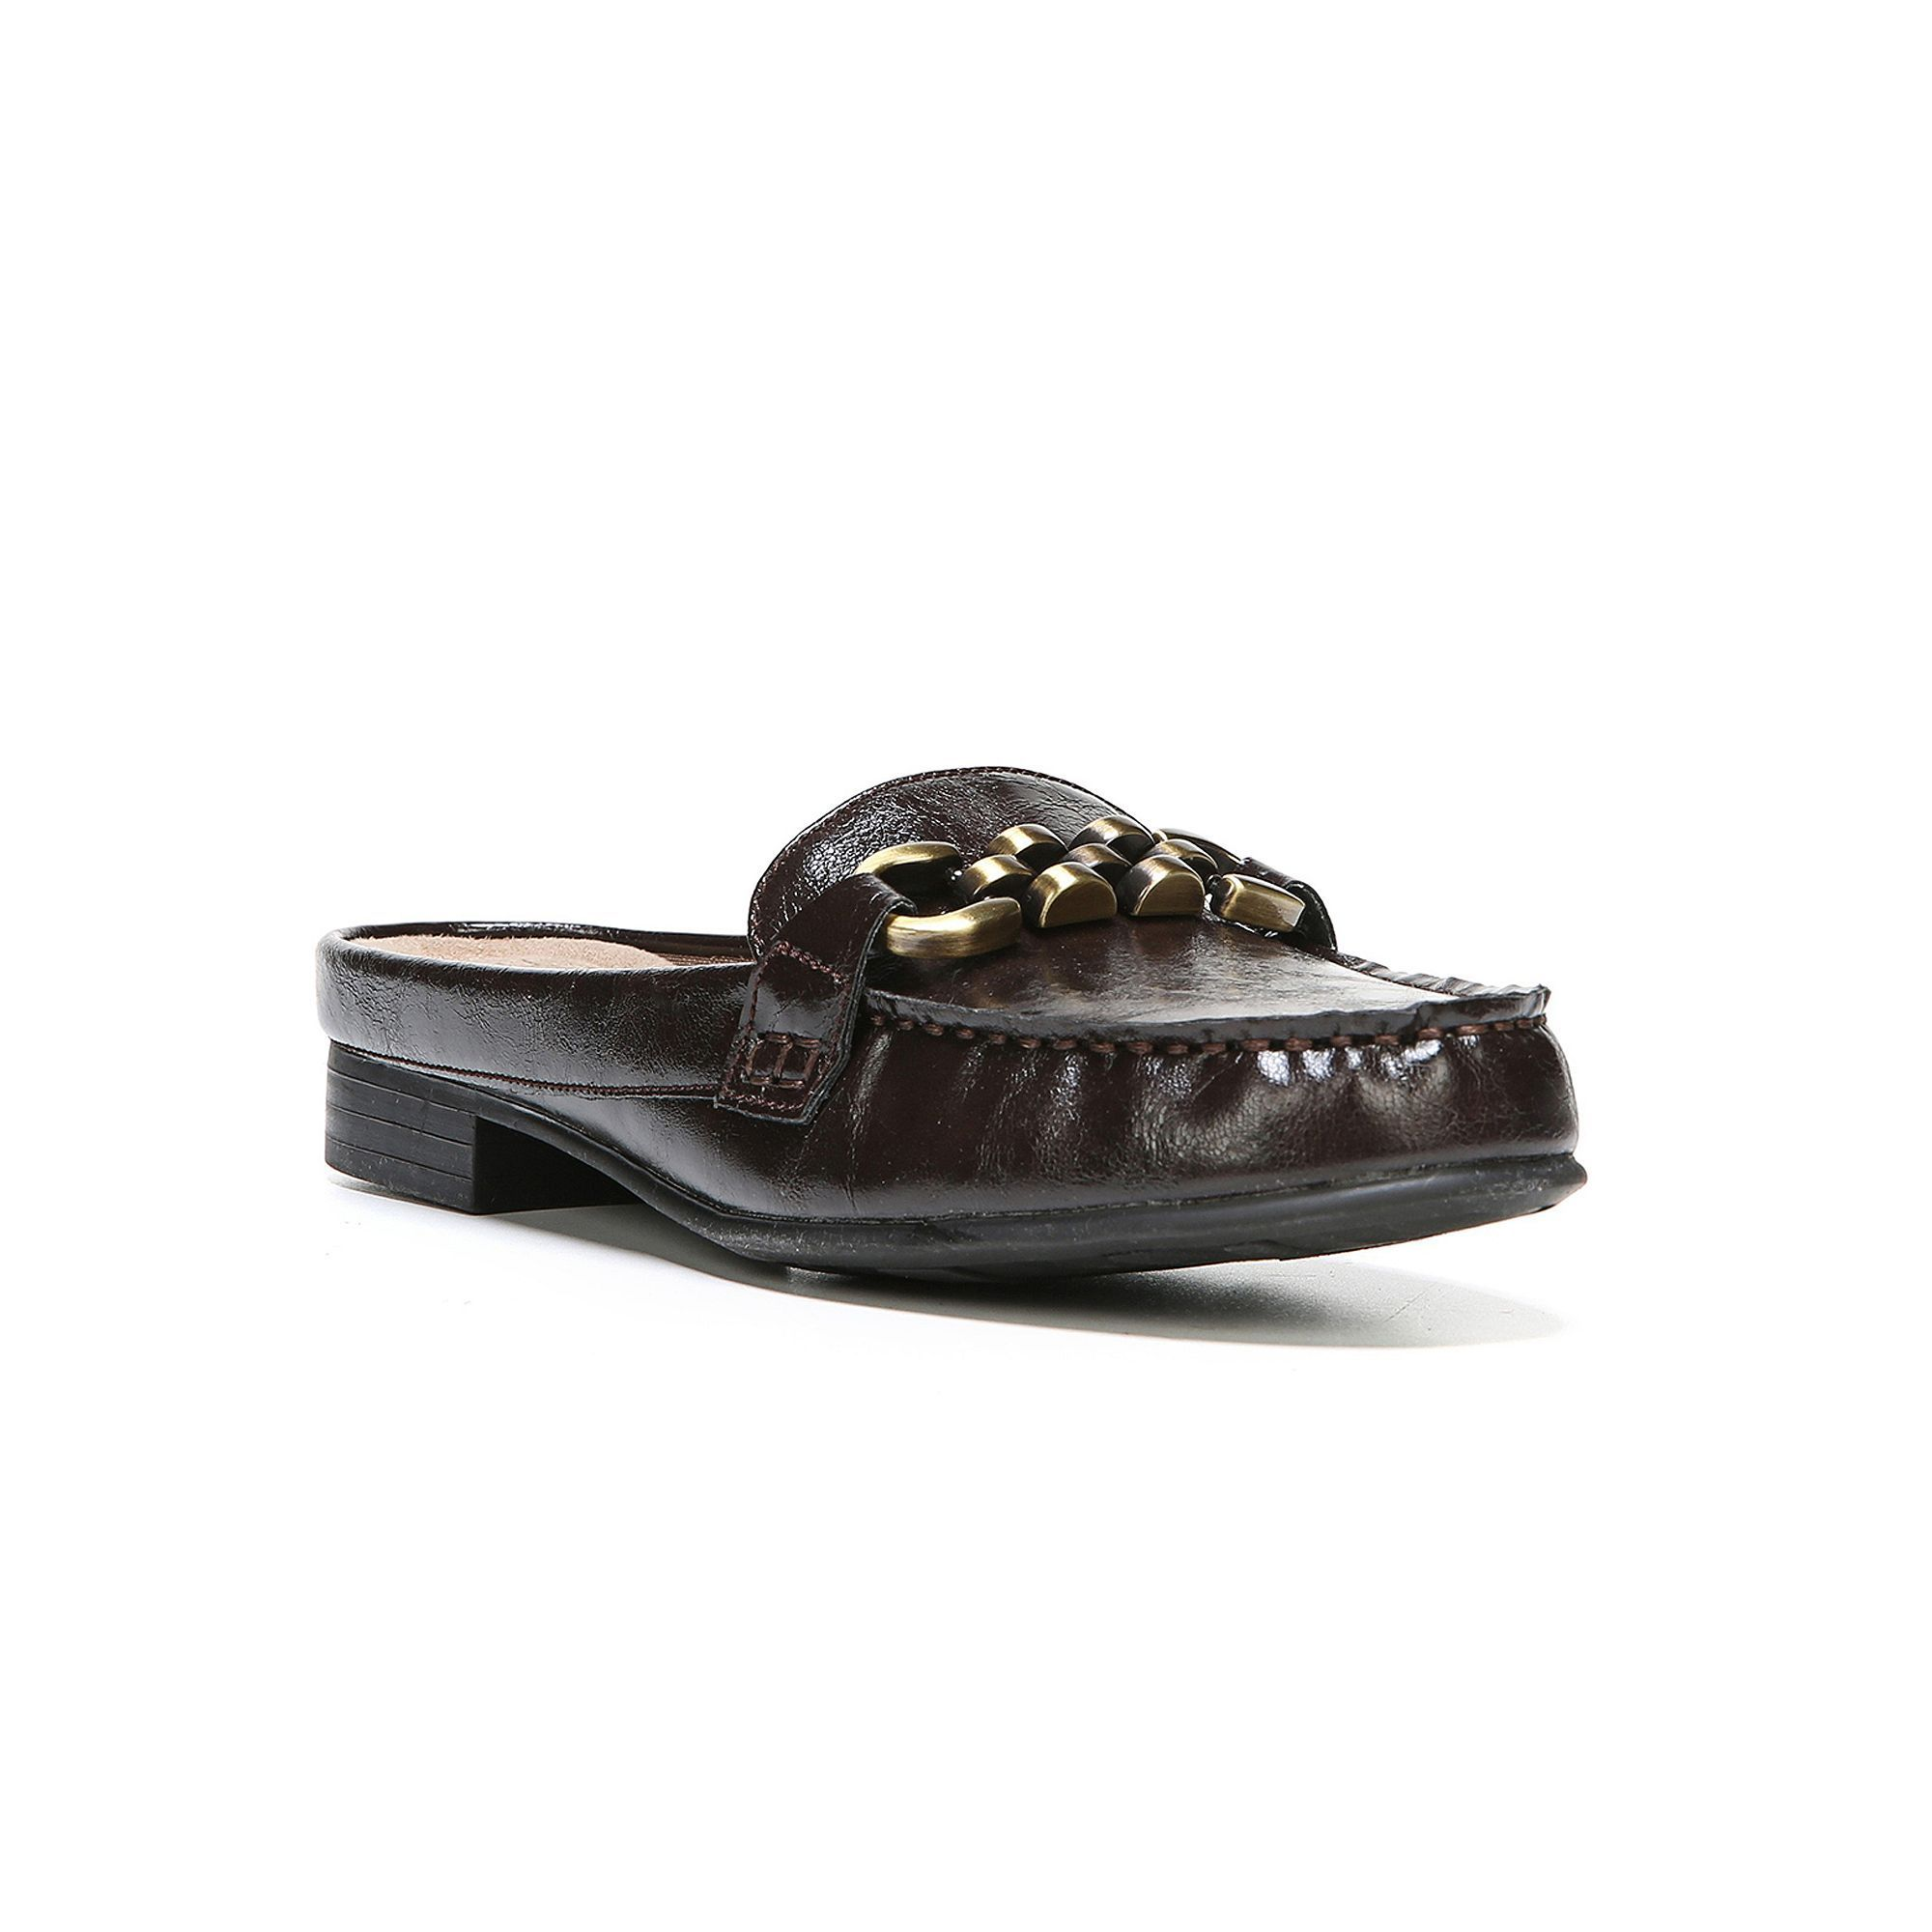 outlet locations cheap price cheap pay with visa LifeStride Sansa Women's ... Loafer Mules 535CnJBgT